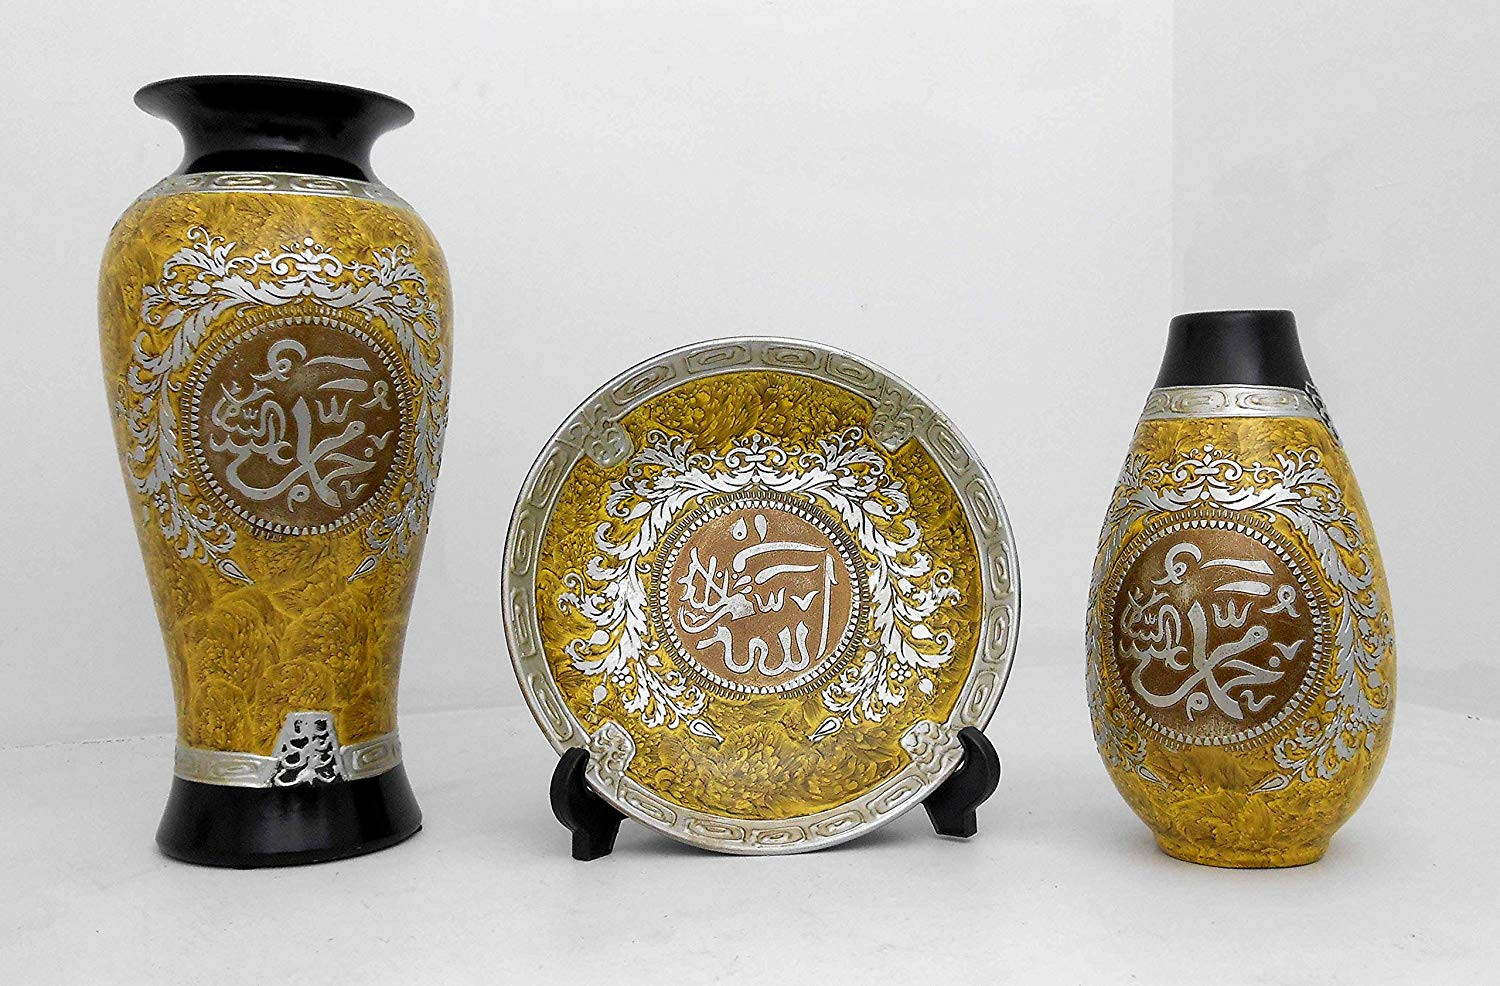 different types of glass vases of amazon com islamic muslim set brown ceramic vase allah mohammad pertaining to amazon com islamic muslim set brown ceramic vase allah mohammad home decorativ